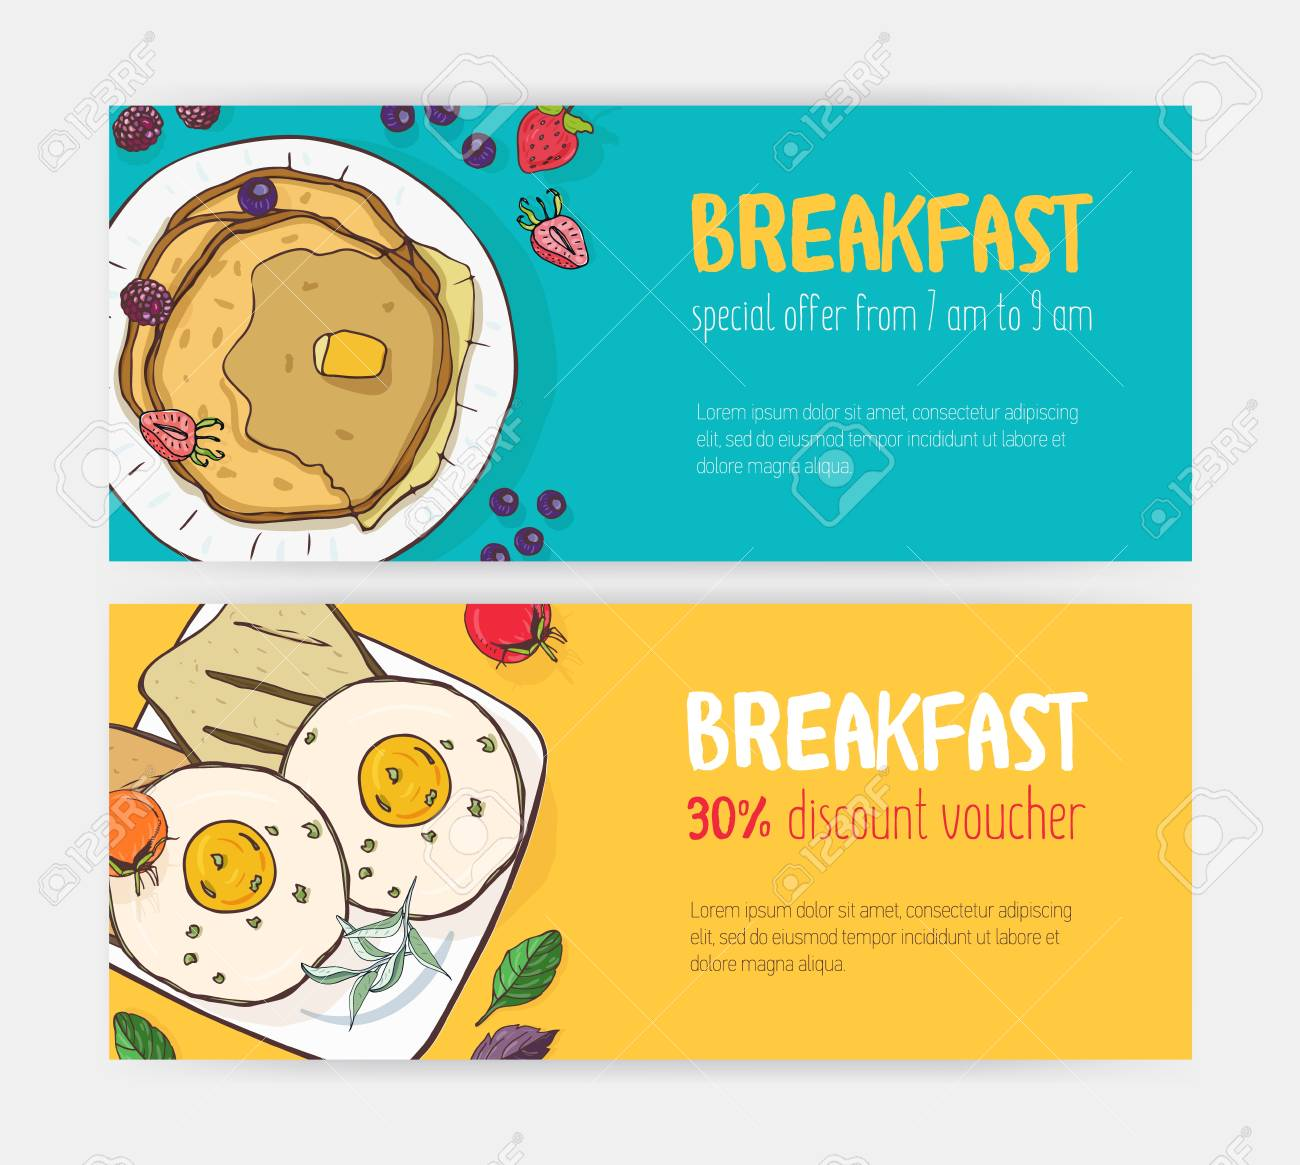 Collection of horizontal discount voucher or coupon templates with delicious breakfast meals lying on plates. Bright colored vector illustration for cafe or restaurant promotion, advertisement - 117295971